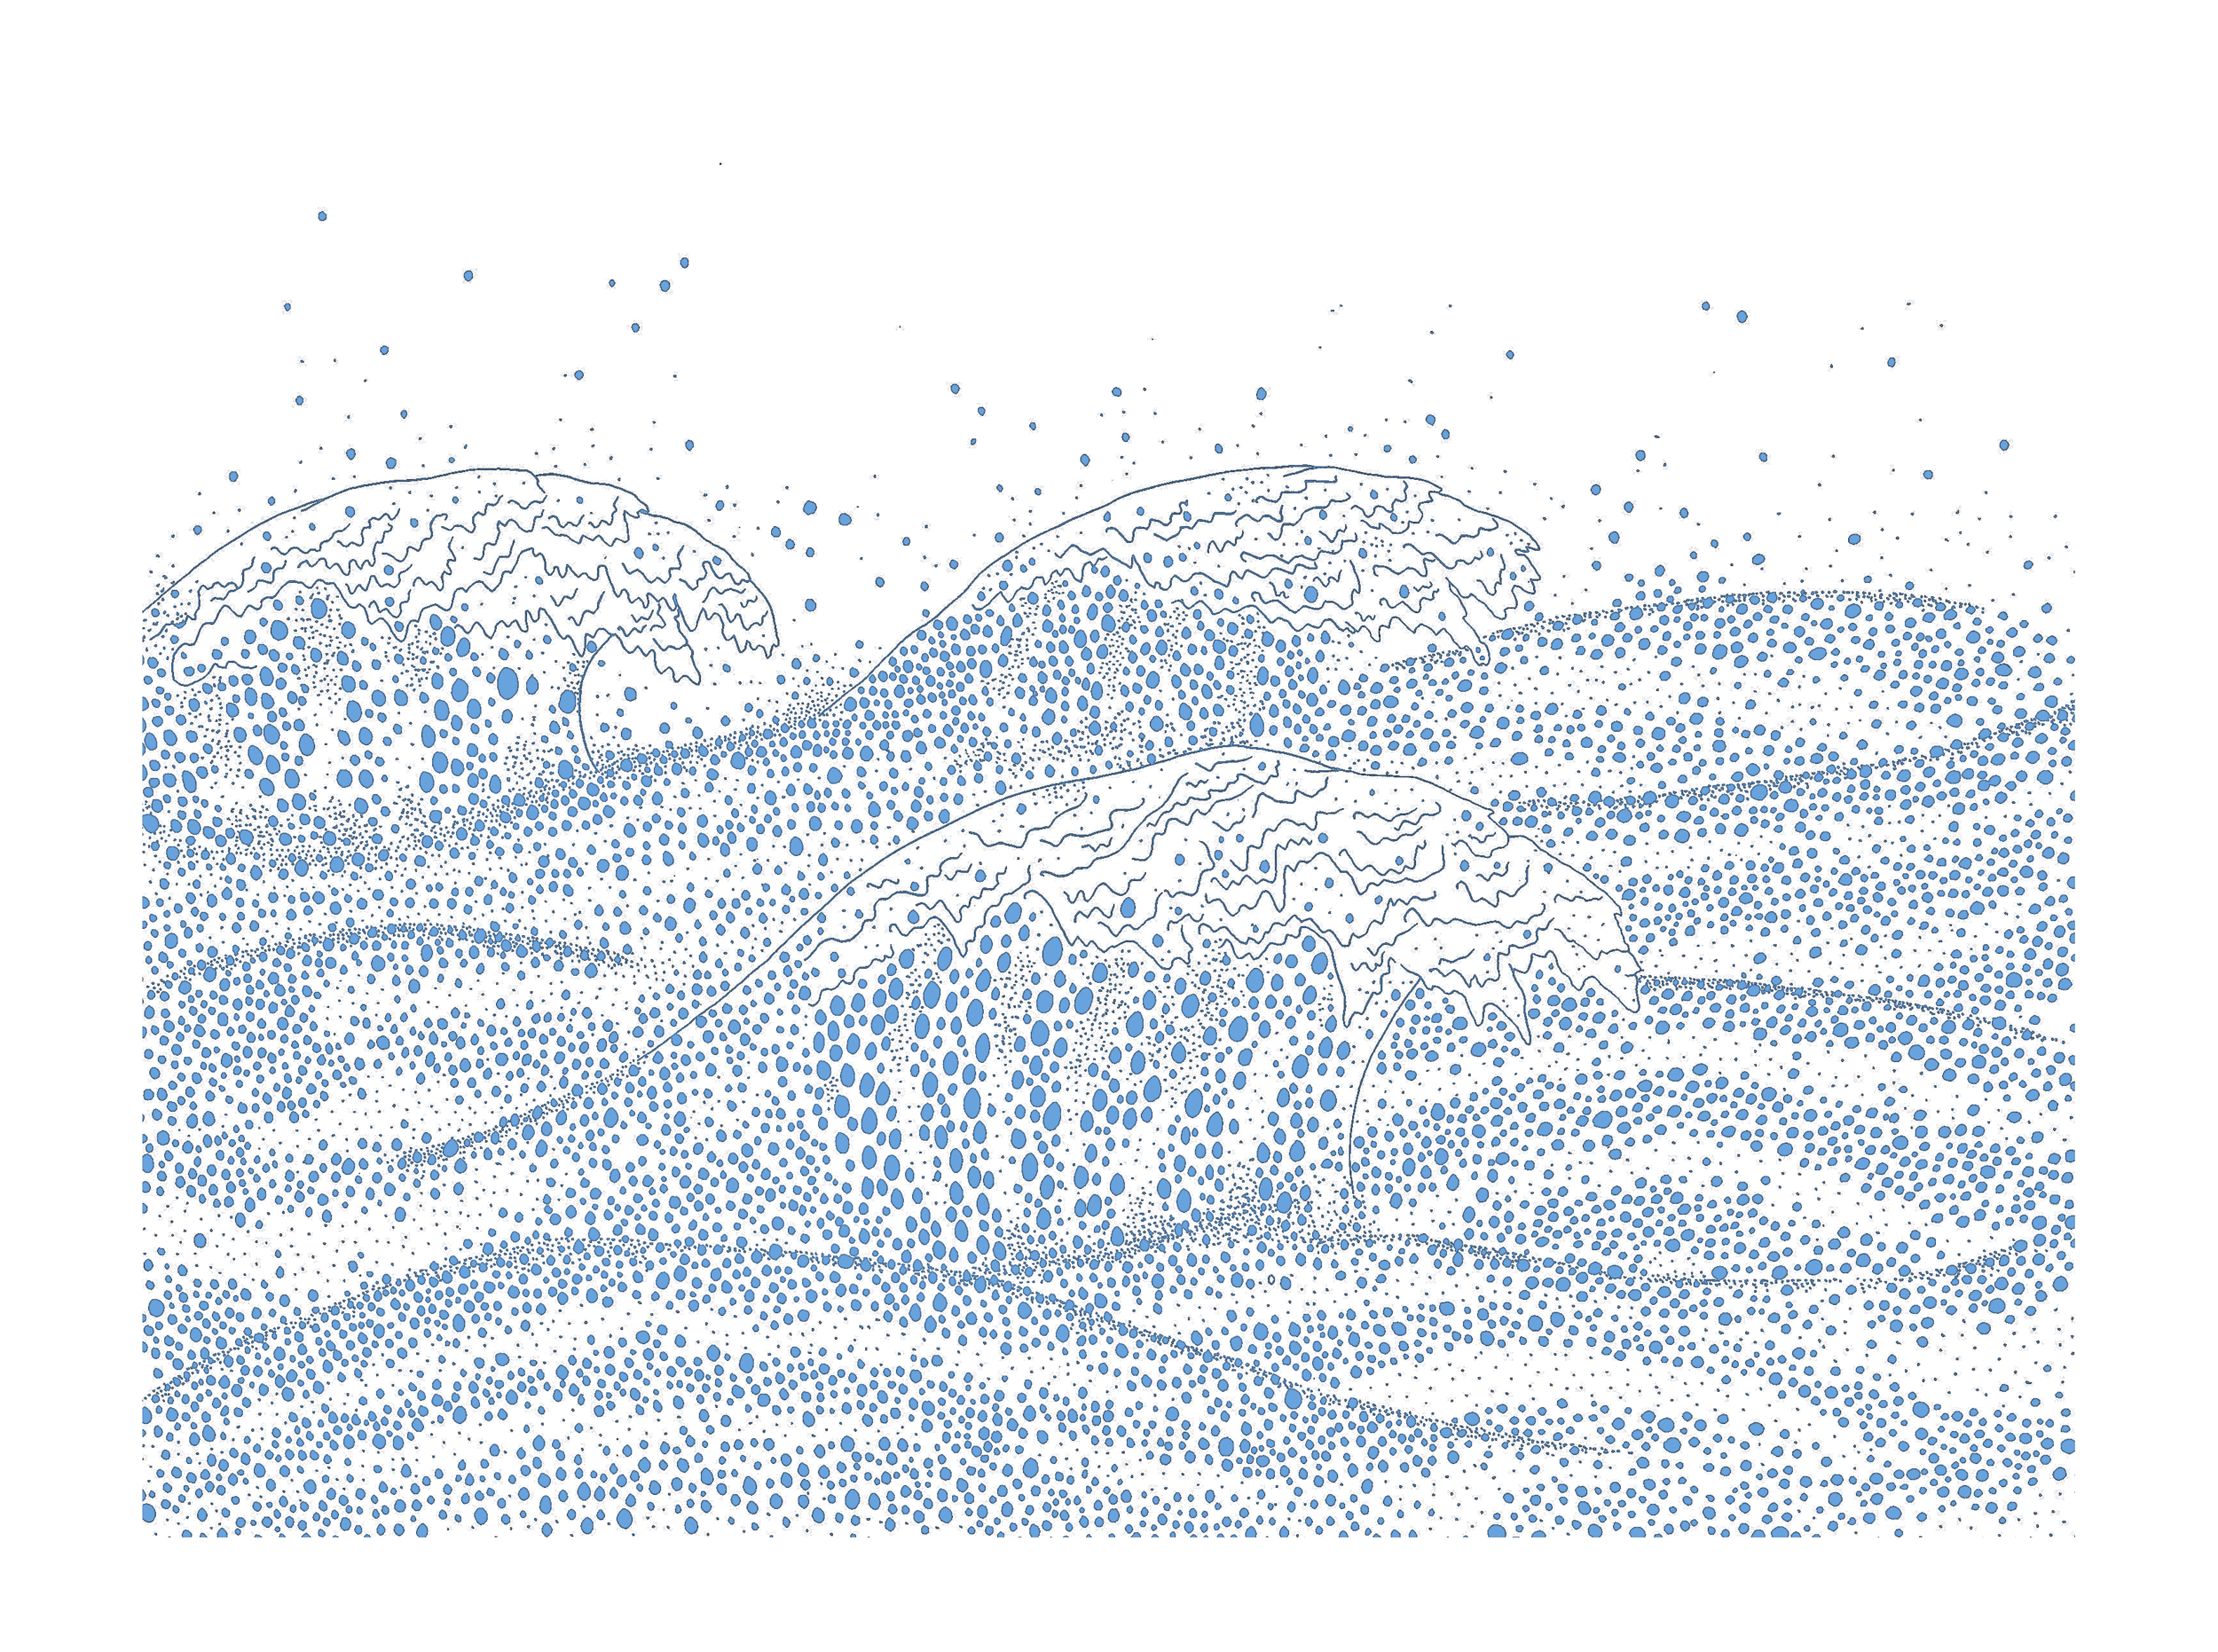 5,200 dots, one for each day of your life. Get one  here , illustrated by Ella Frances Sanders.